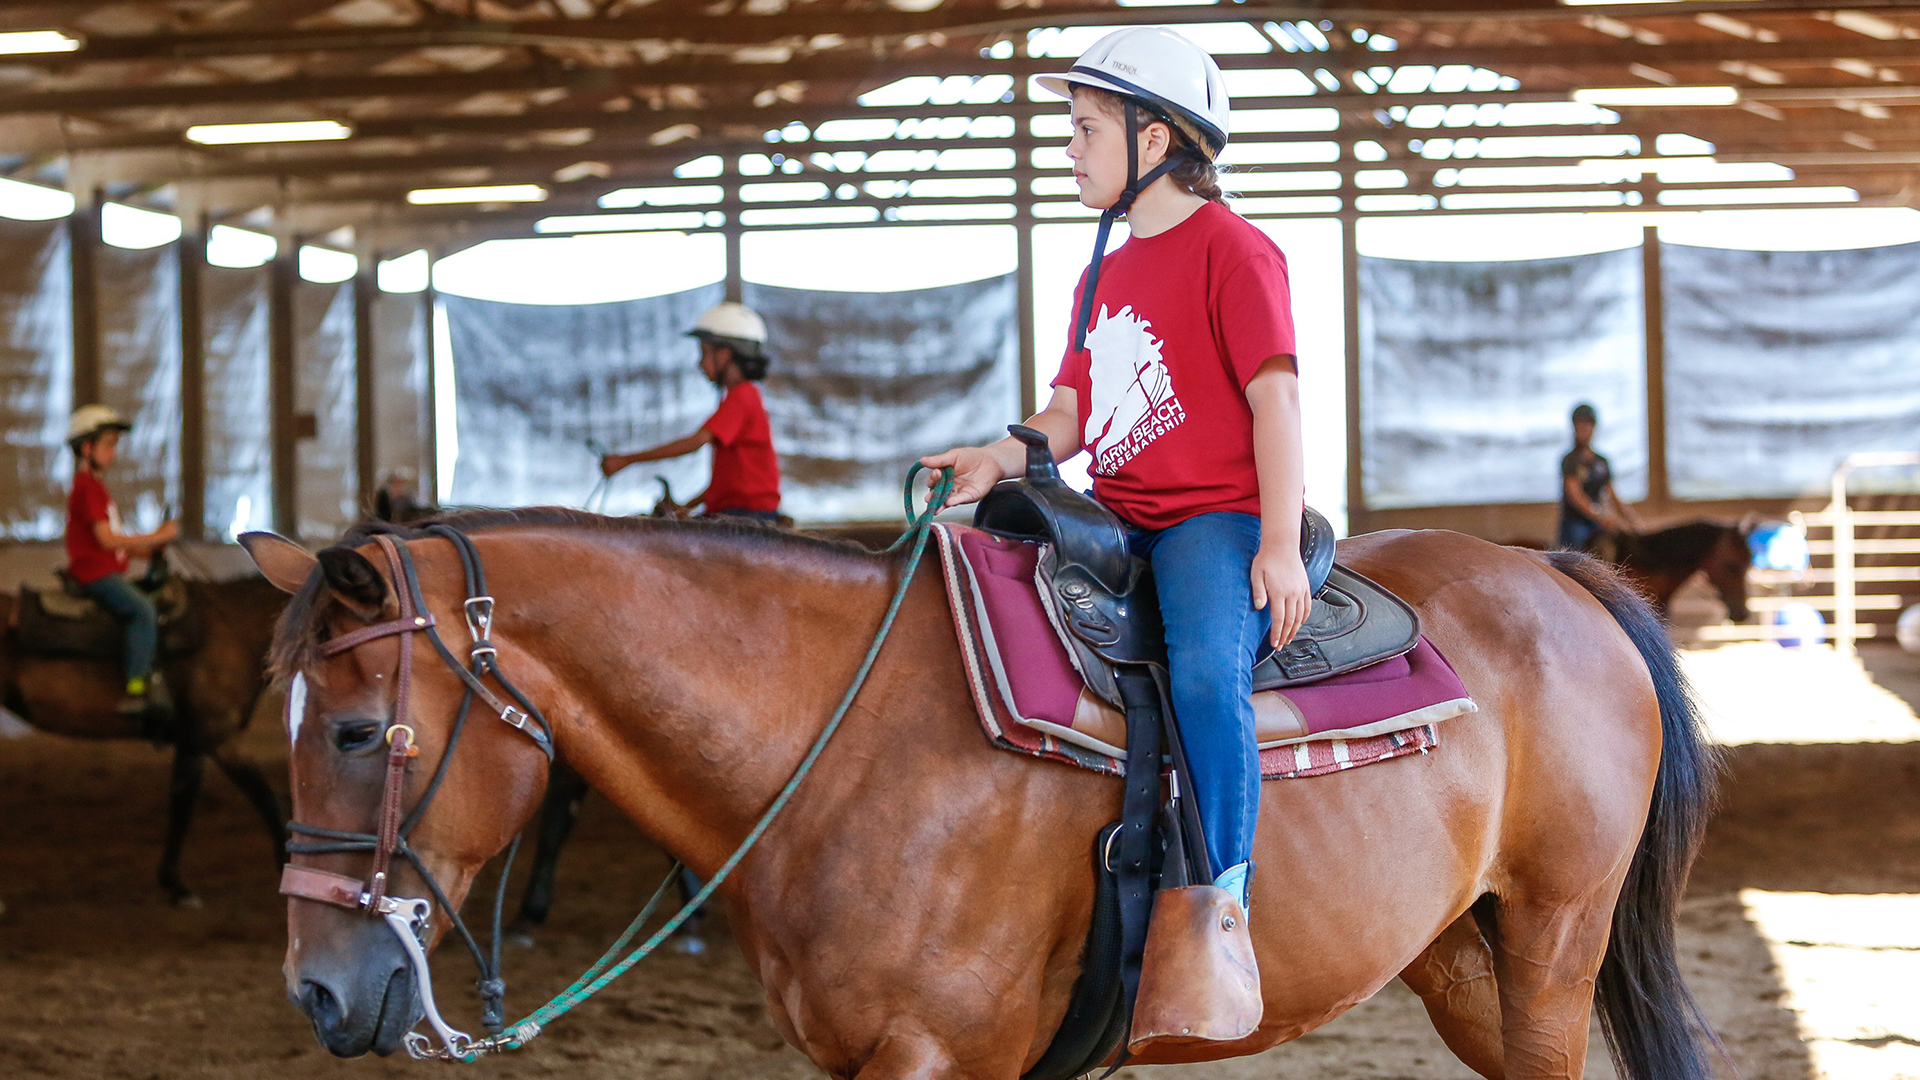 Riding lessons at Warm Beach Camp and Conference Center, Stanwood, WA; near Seattle.